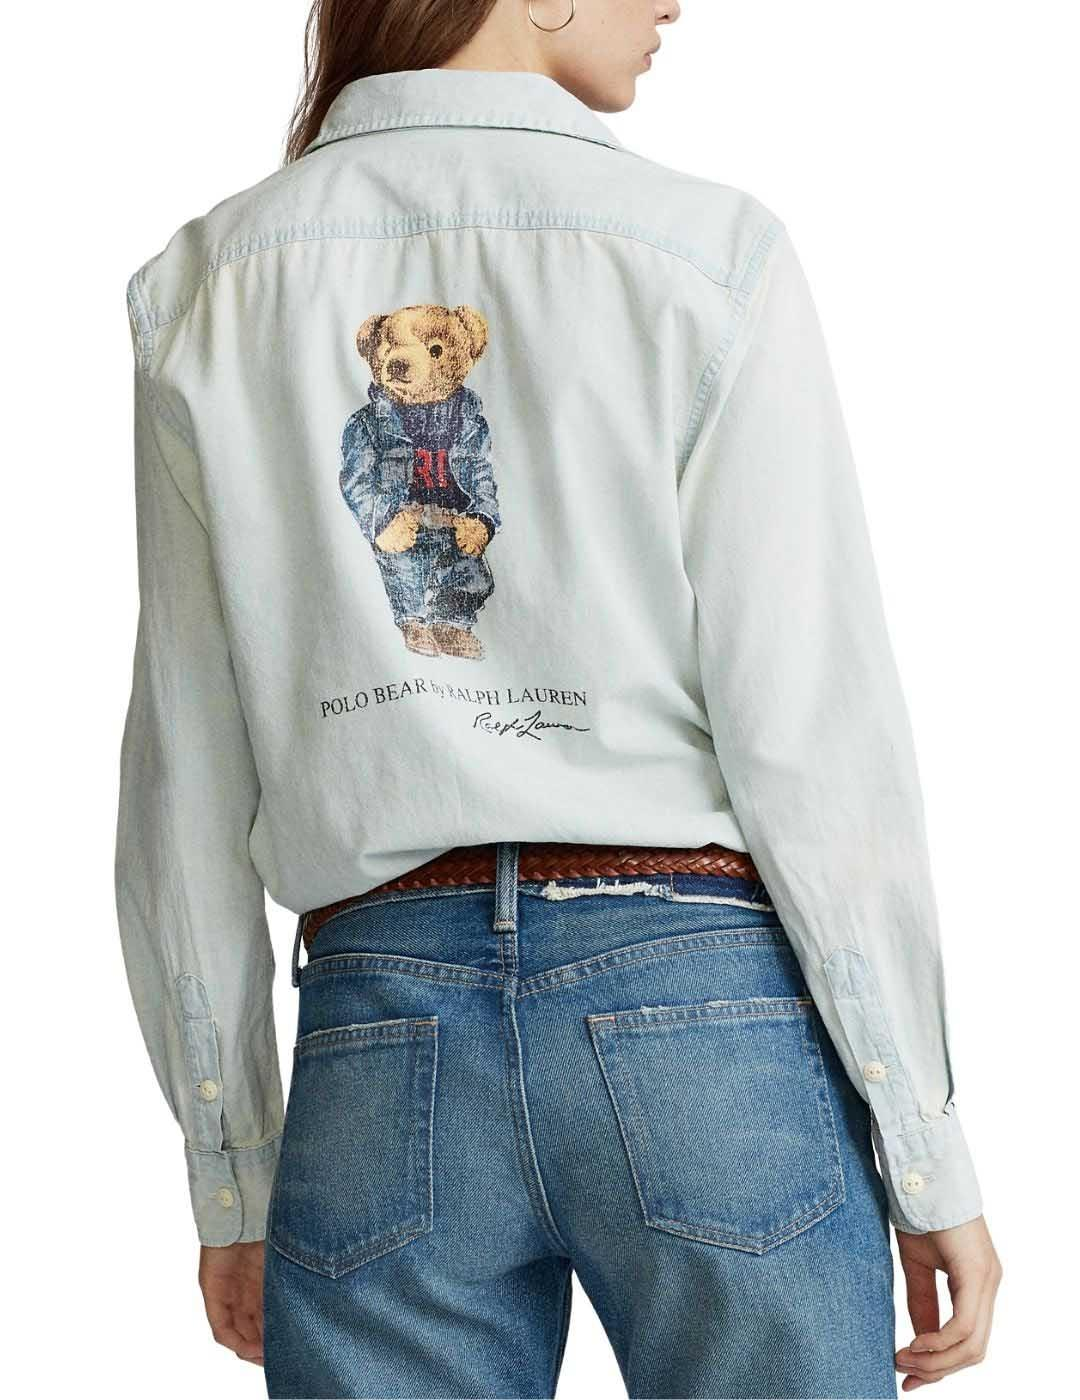 Camisa Polo Ralpoh Lauren de chambray con Polo Bear estampad